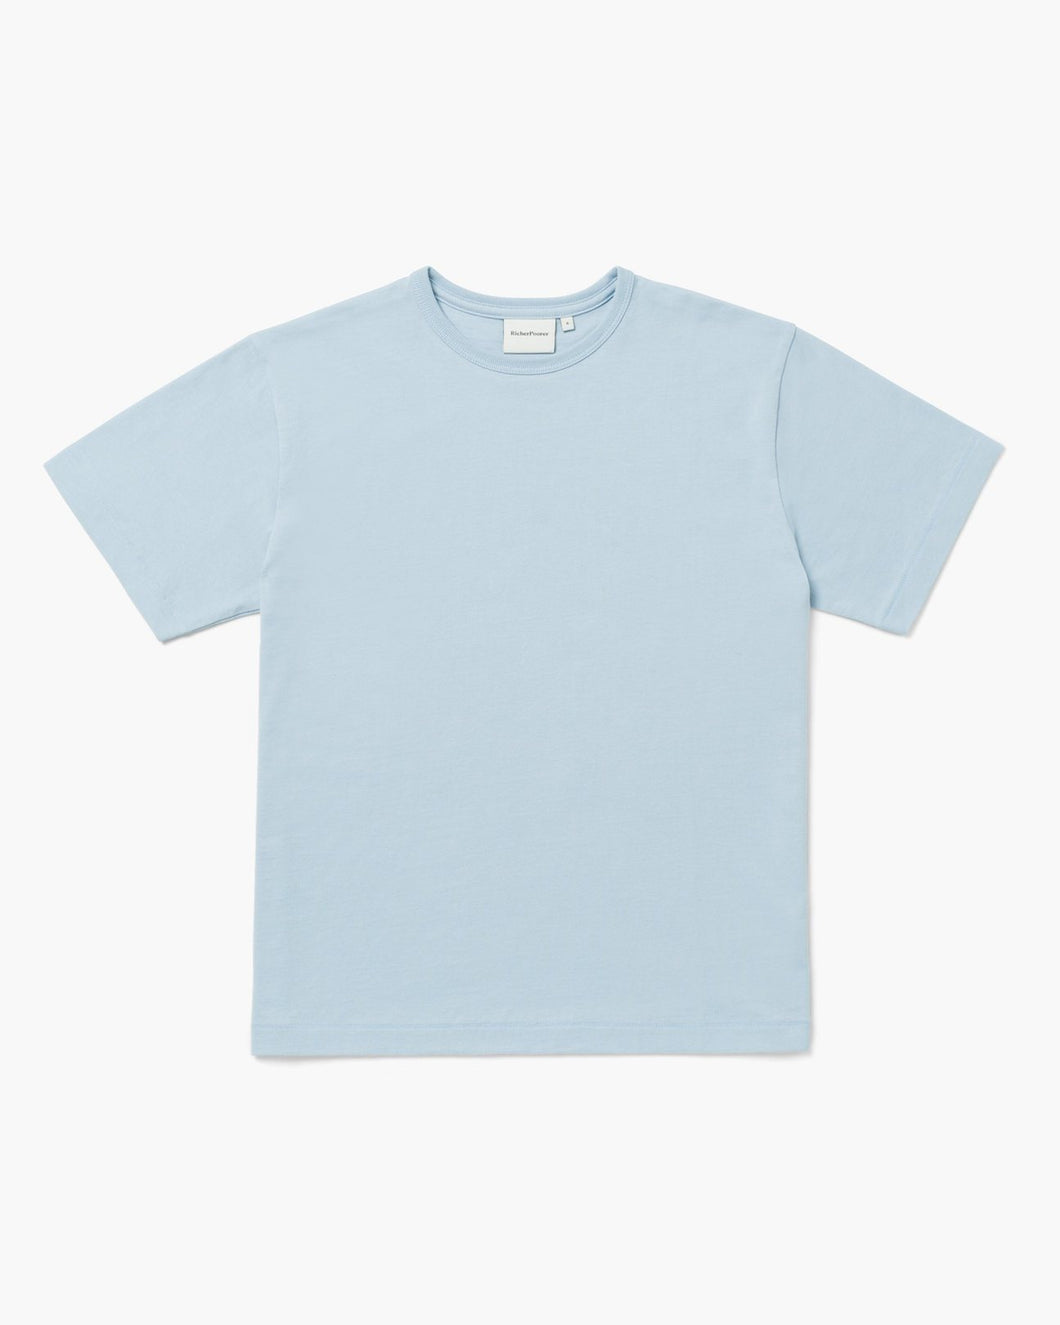 Richer Poorer Weighted Tee